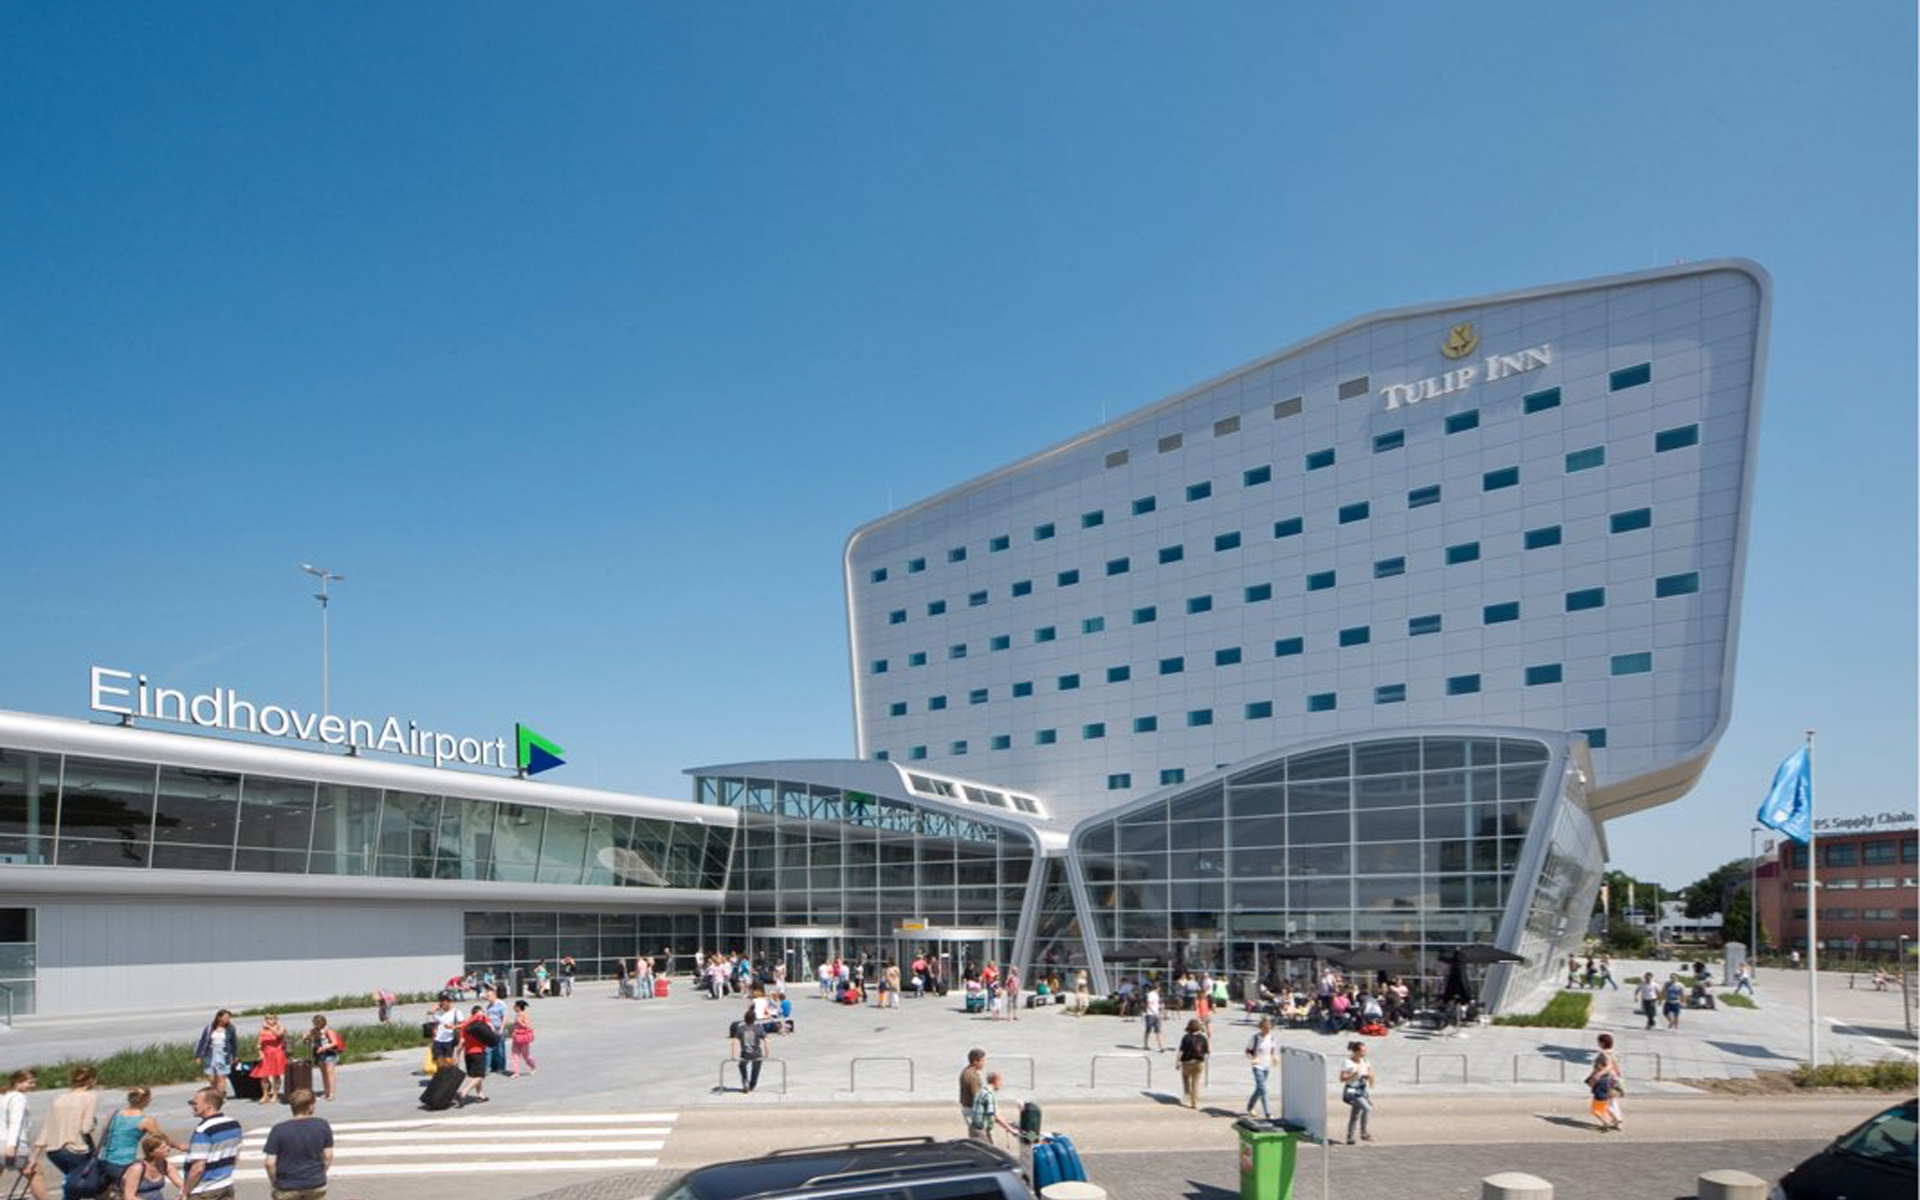 DAY Creative Eindhoven Airport building